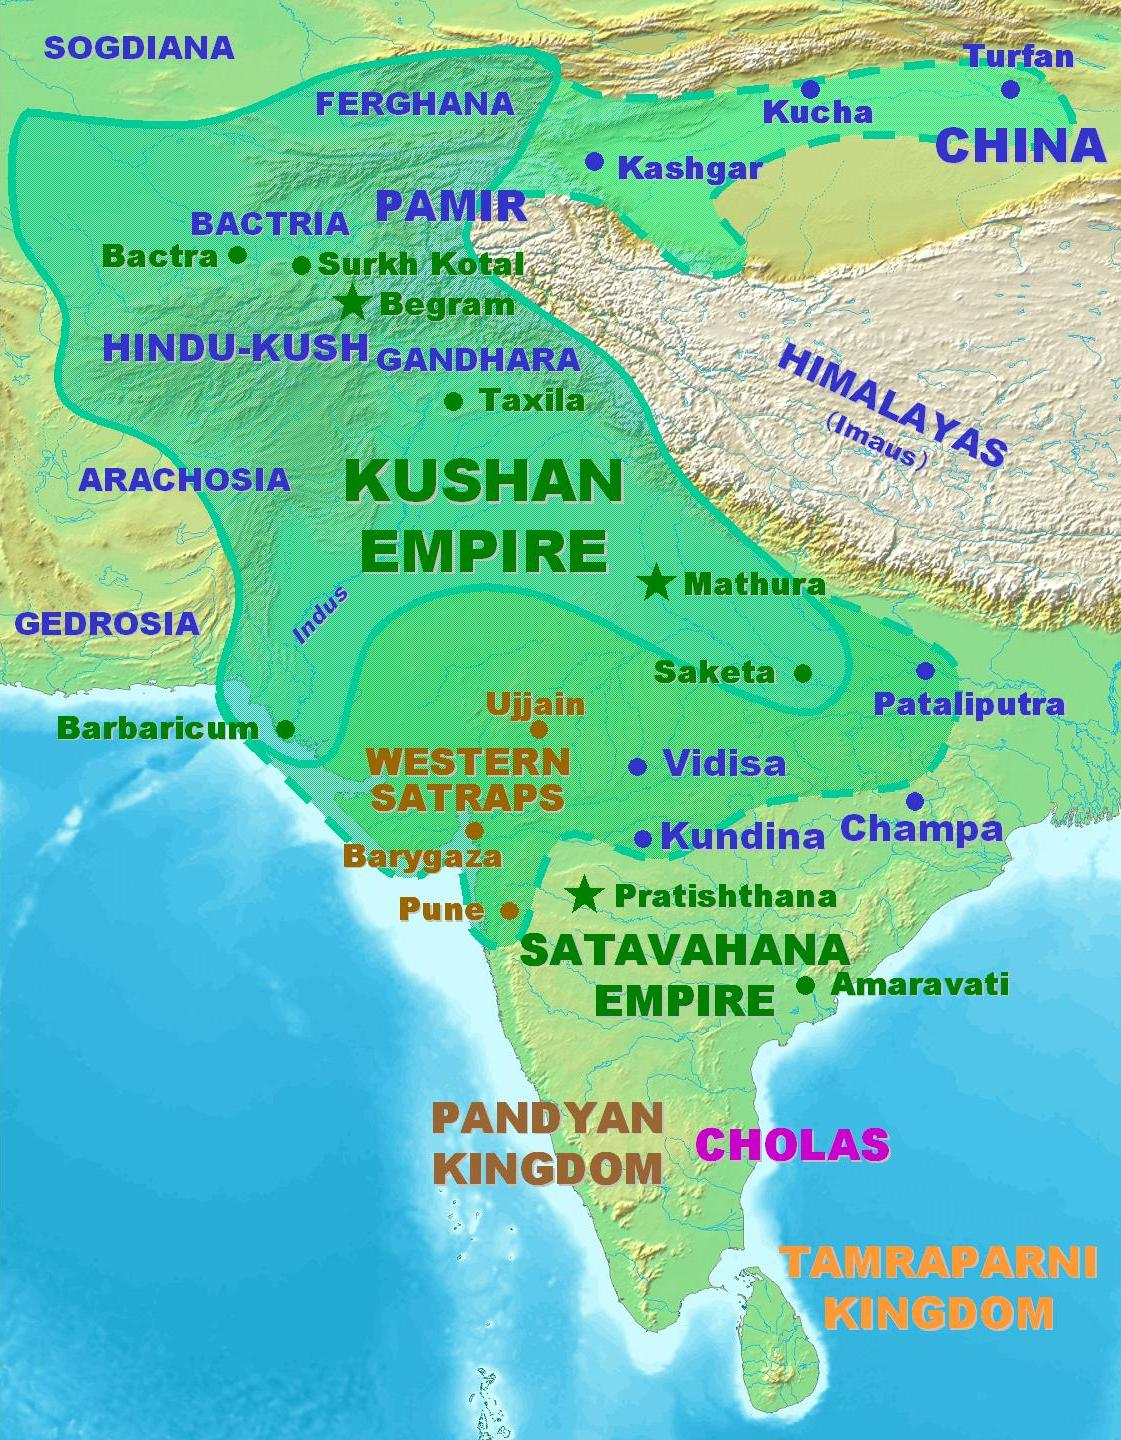 https://upload.wikimedia.org/wikipedia/commons/9/9b/KushanEmpireMap.jpg